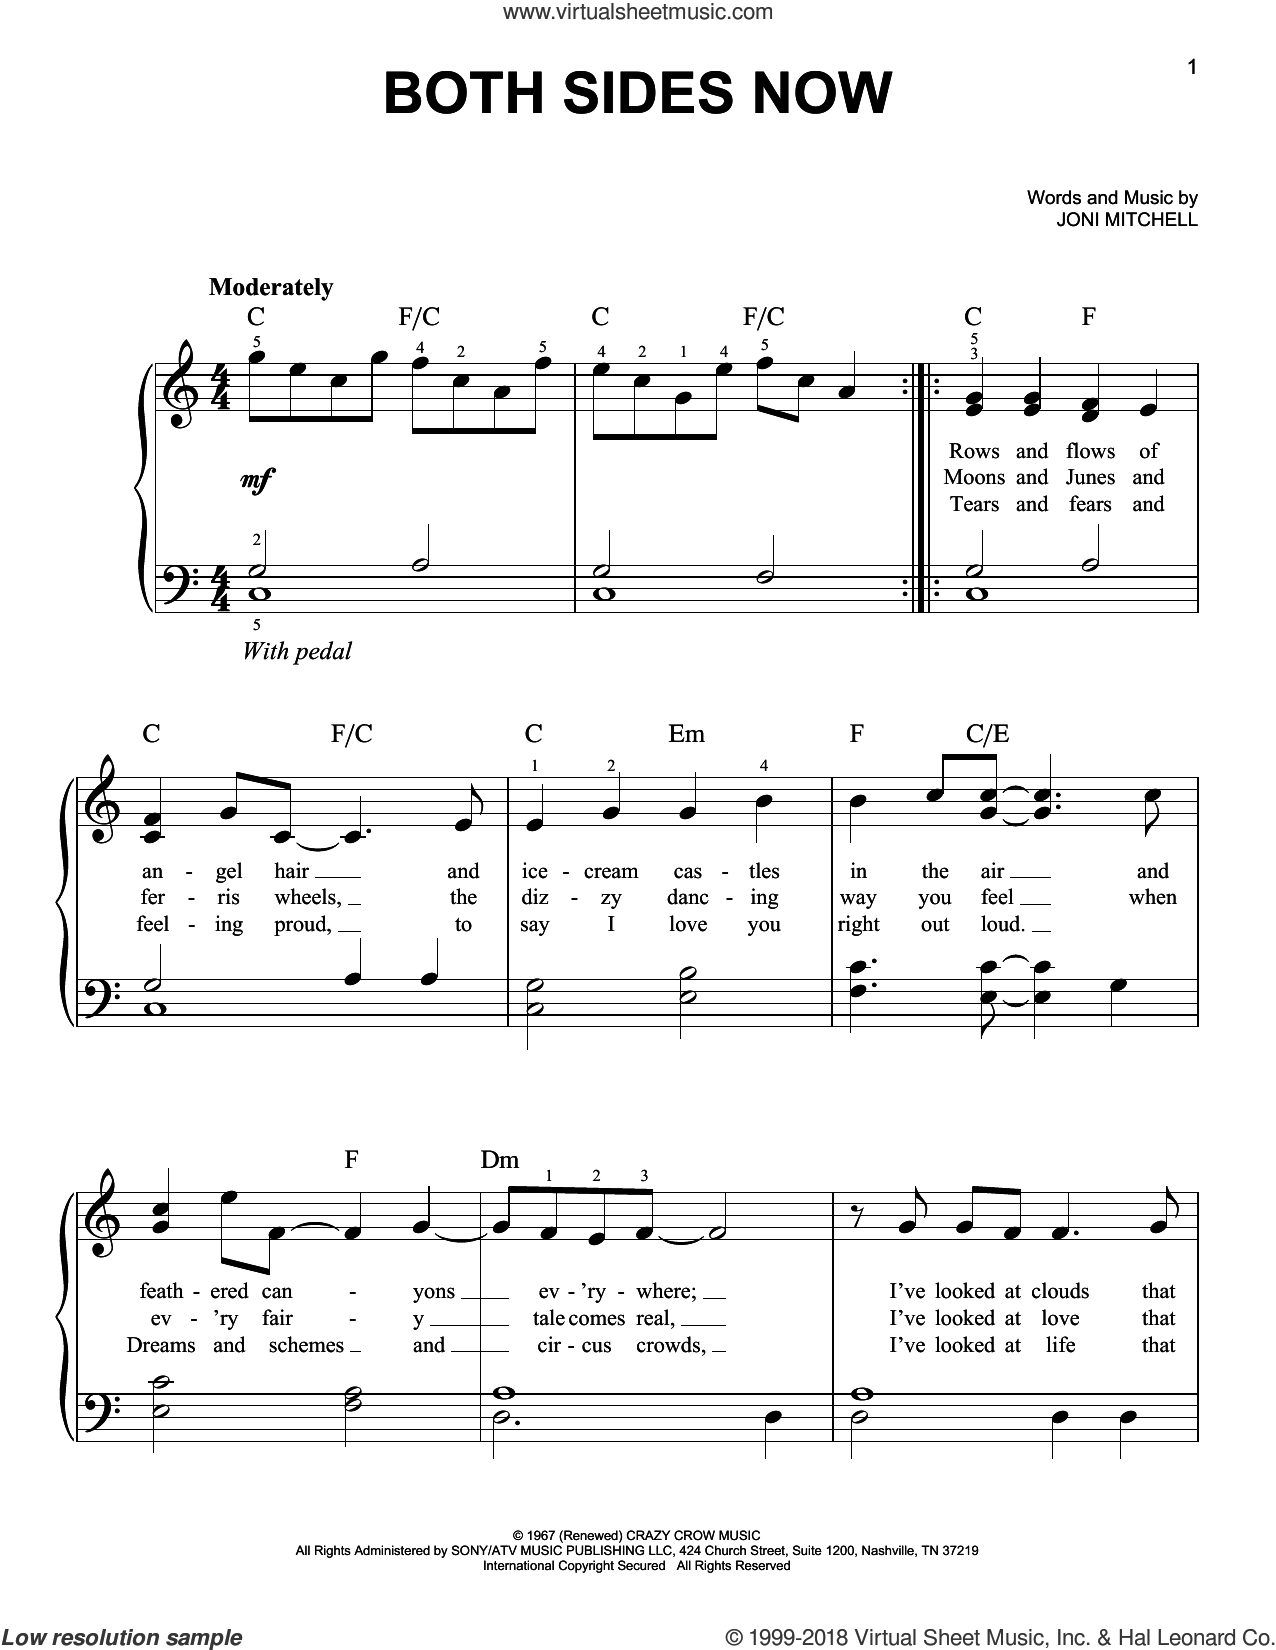 Both Sides Now sheet music for piano solo by Judy Collins, Dion and Joni Mitchell, easy skill level